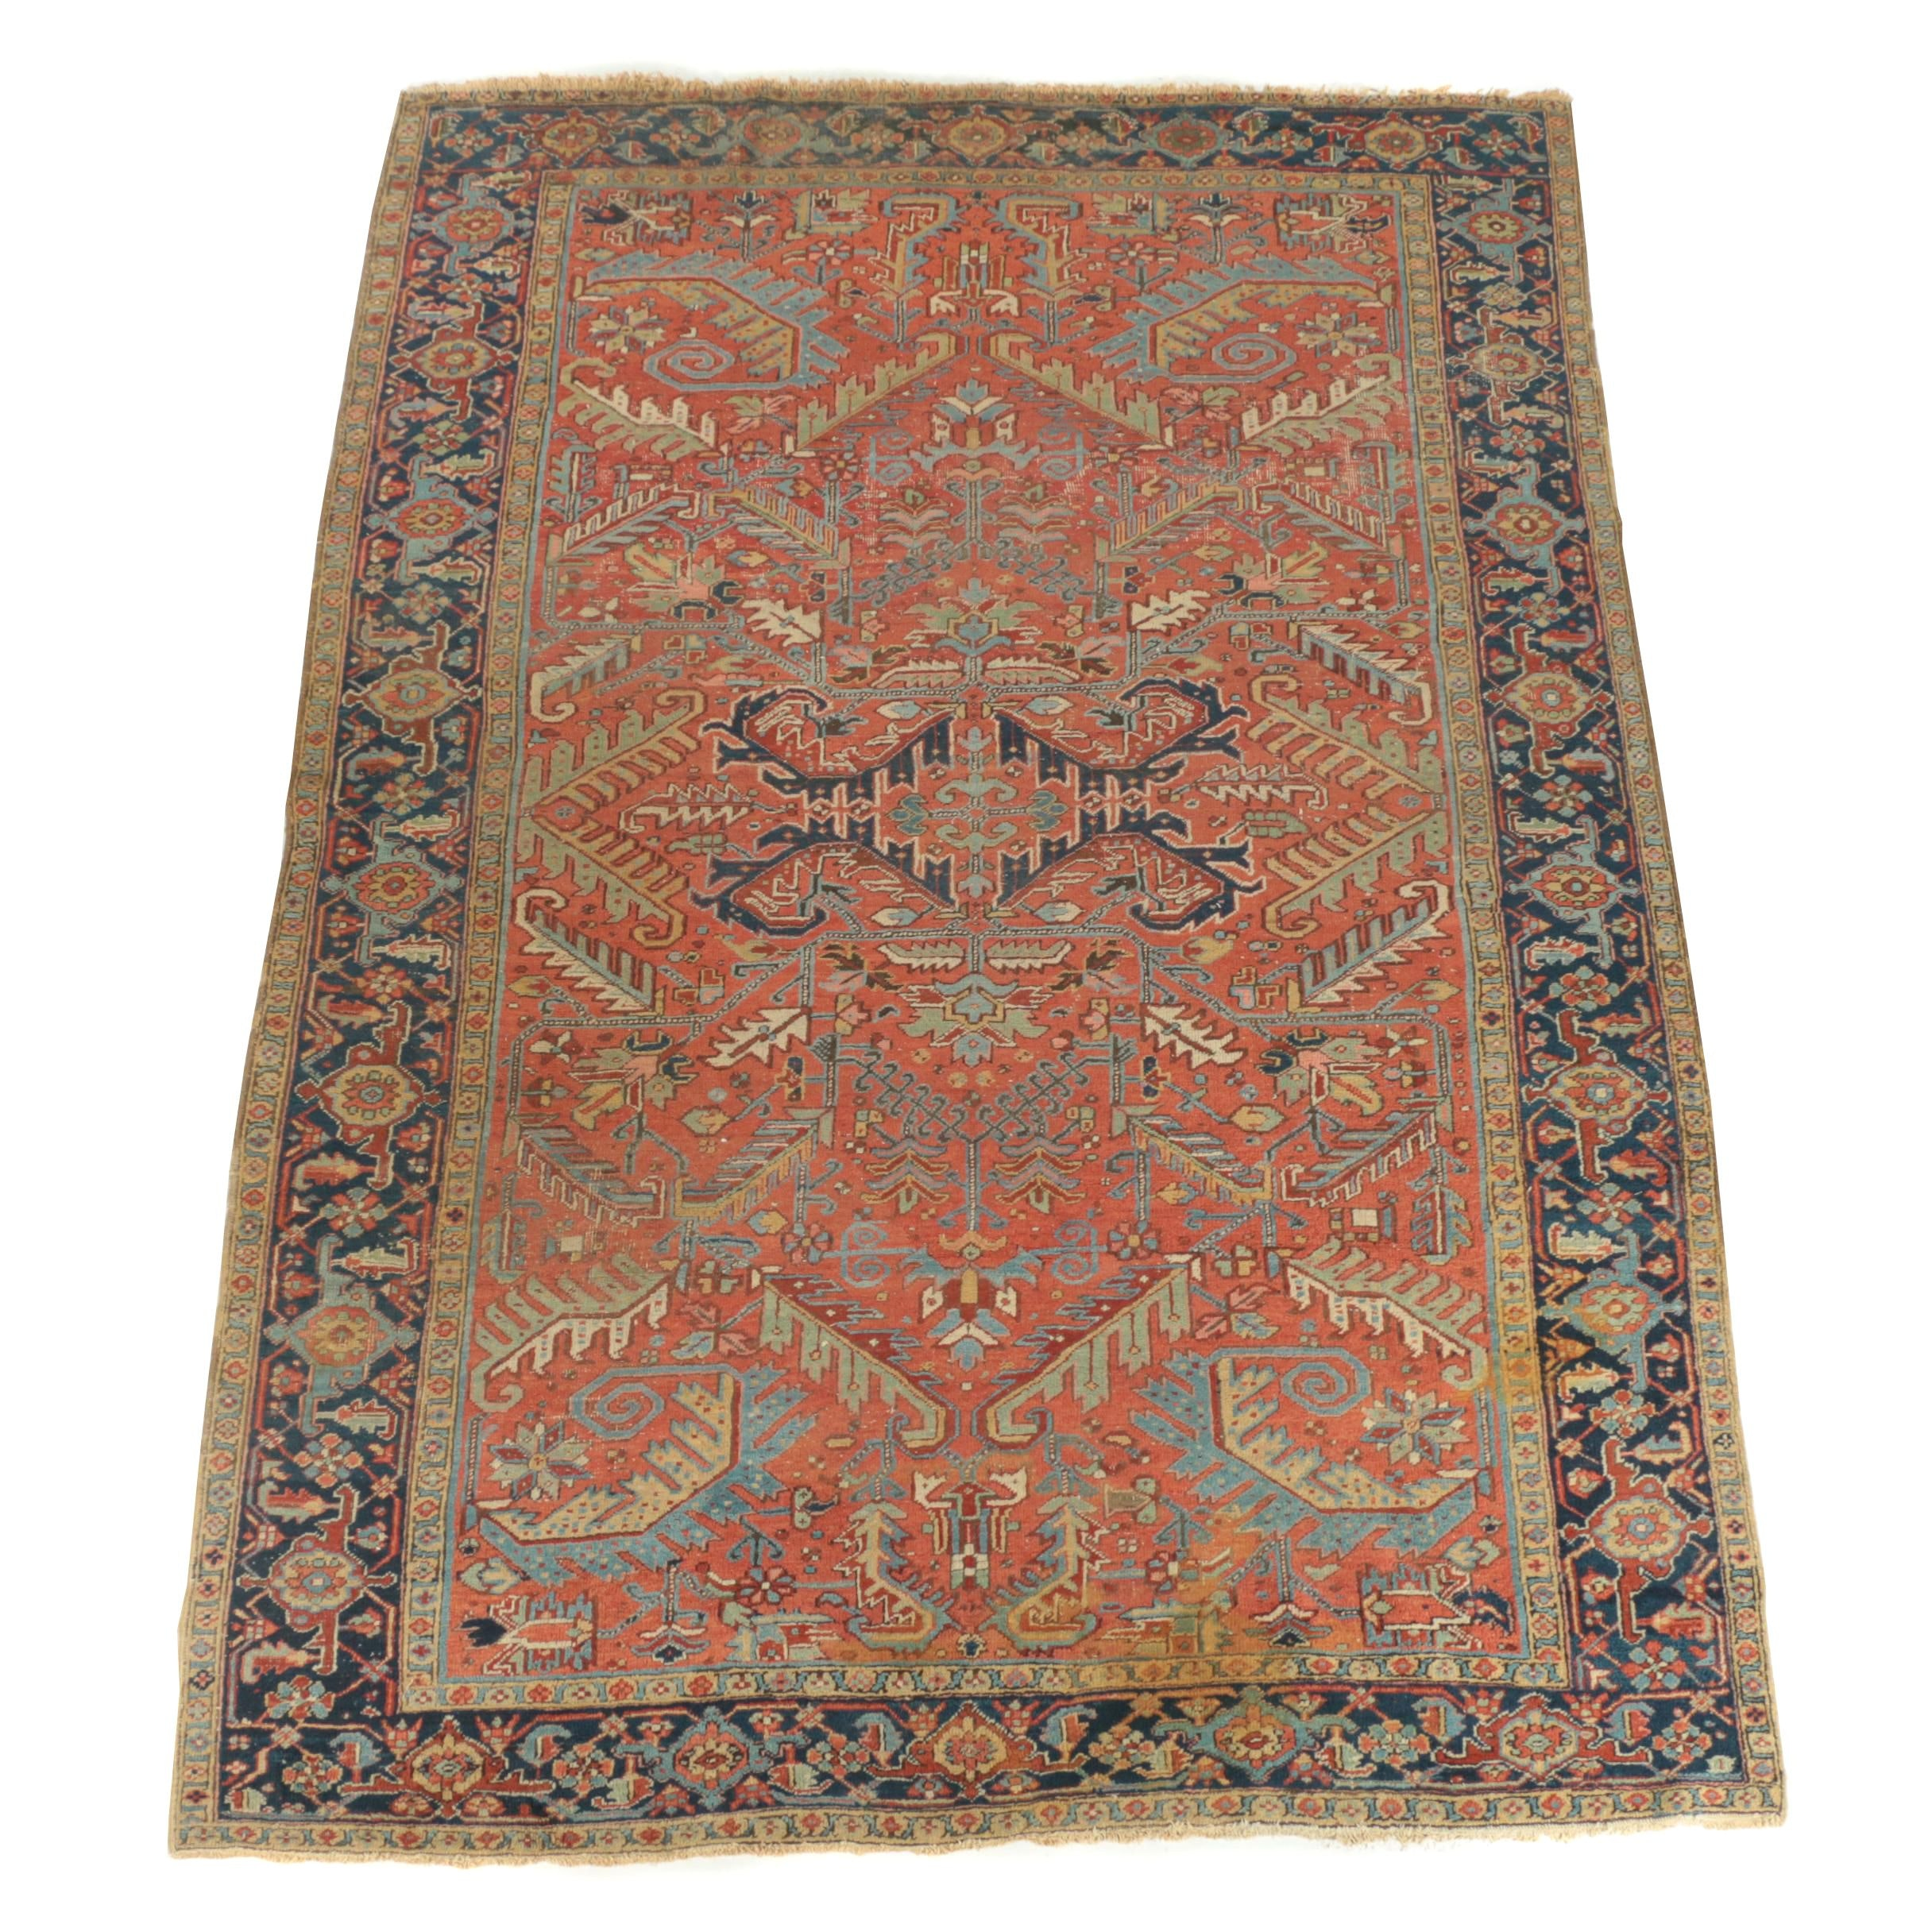 Semi-Antique Hand-Knotted Persian Heriz Wool Area Rug